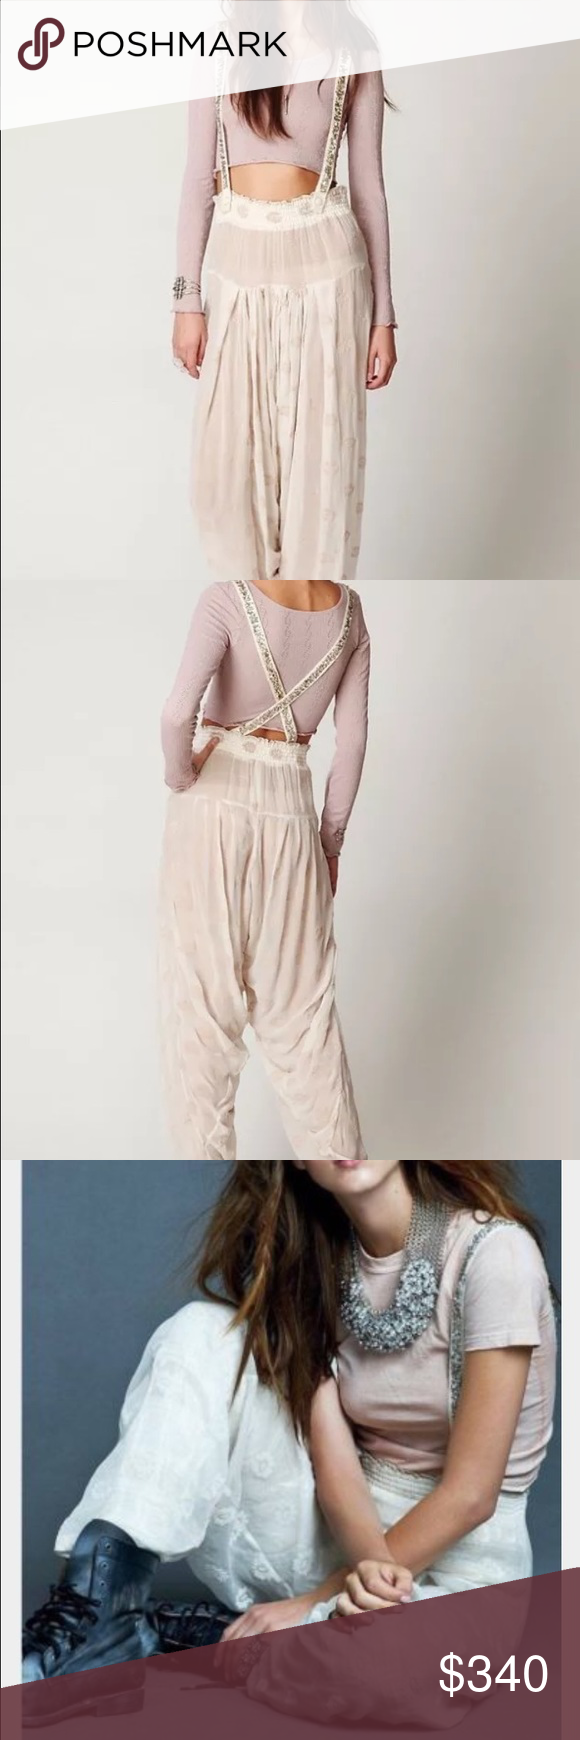 9071ab36c09 Free people glamourai sequin overalls harem pants Amazing embellished  overalls with sheer velvet burnout print sooo stunning they re unreal!